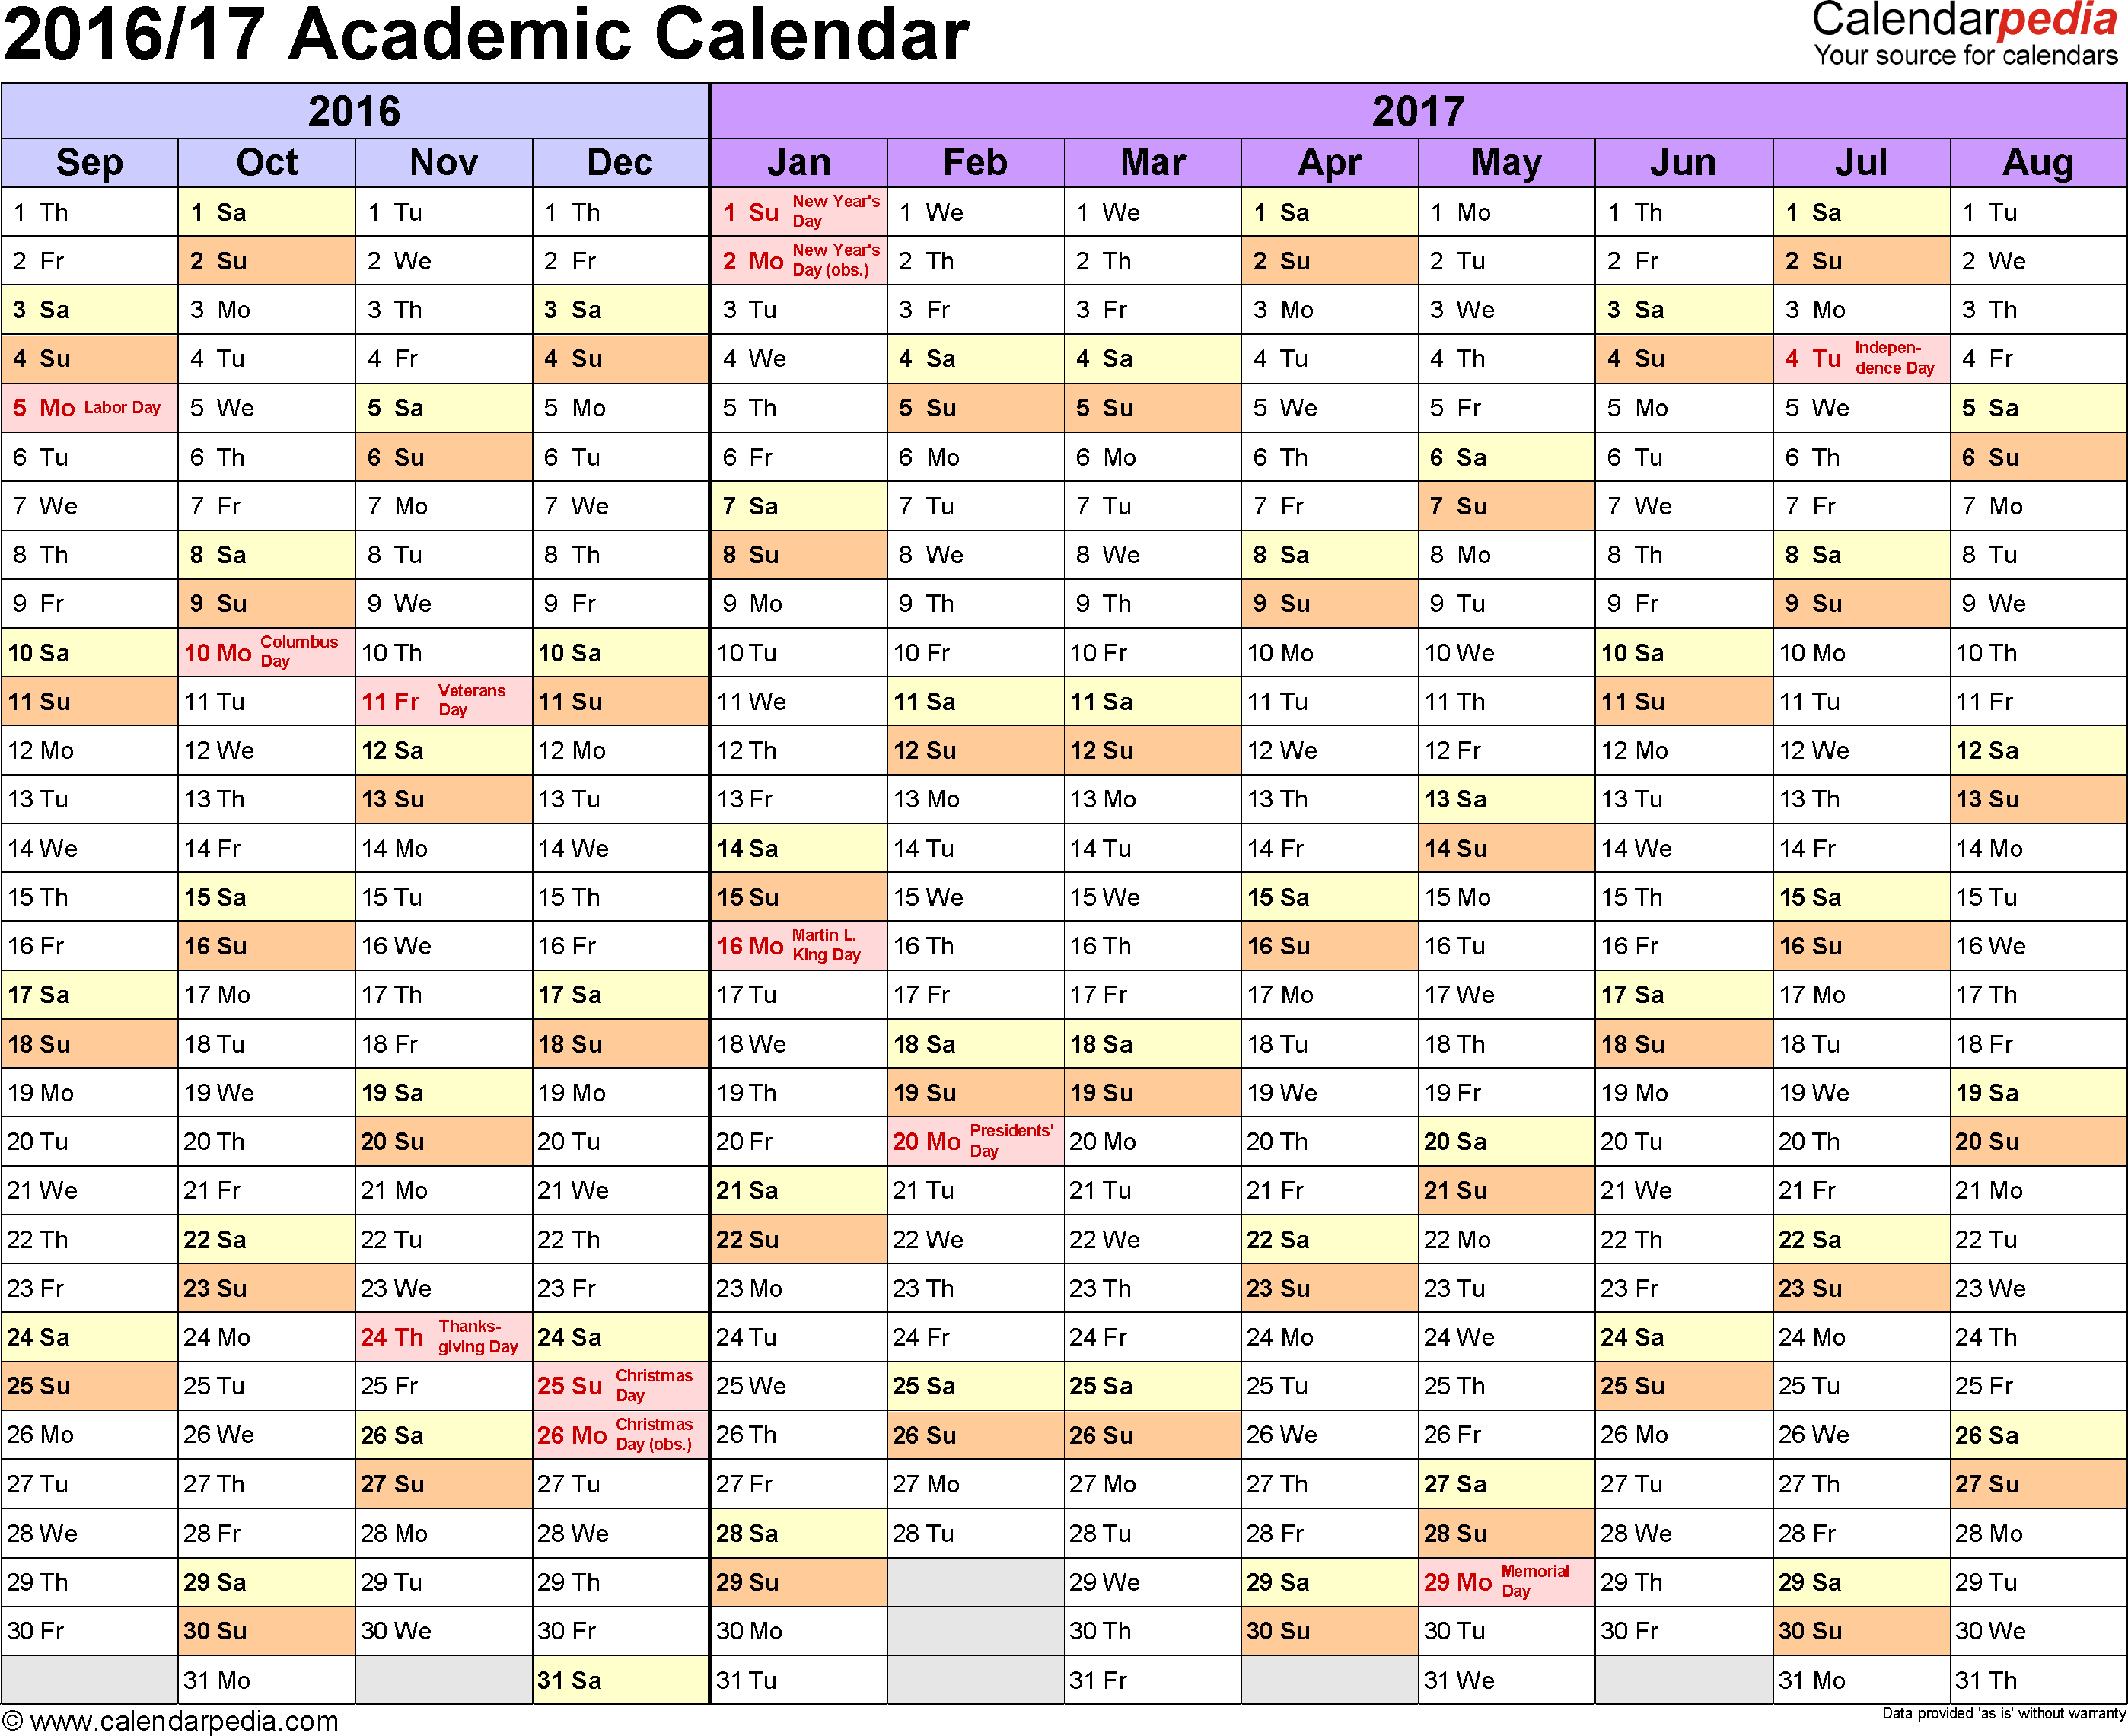 Template 1: Academic calendar 2016/17 for Microsoft Word (.docx file), landscape, 1 page